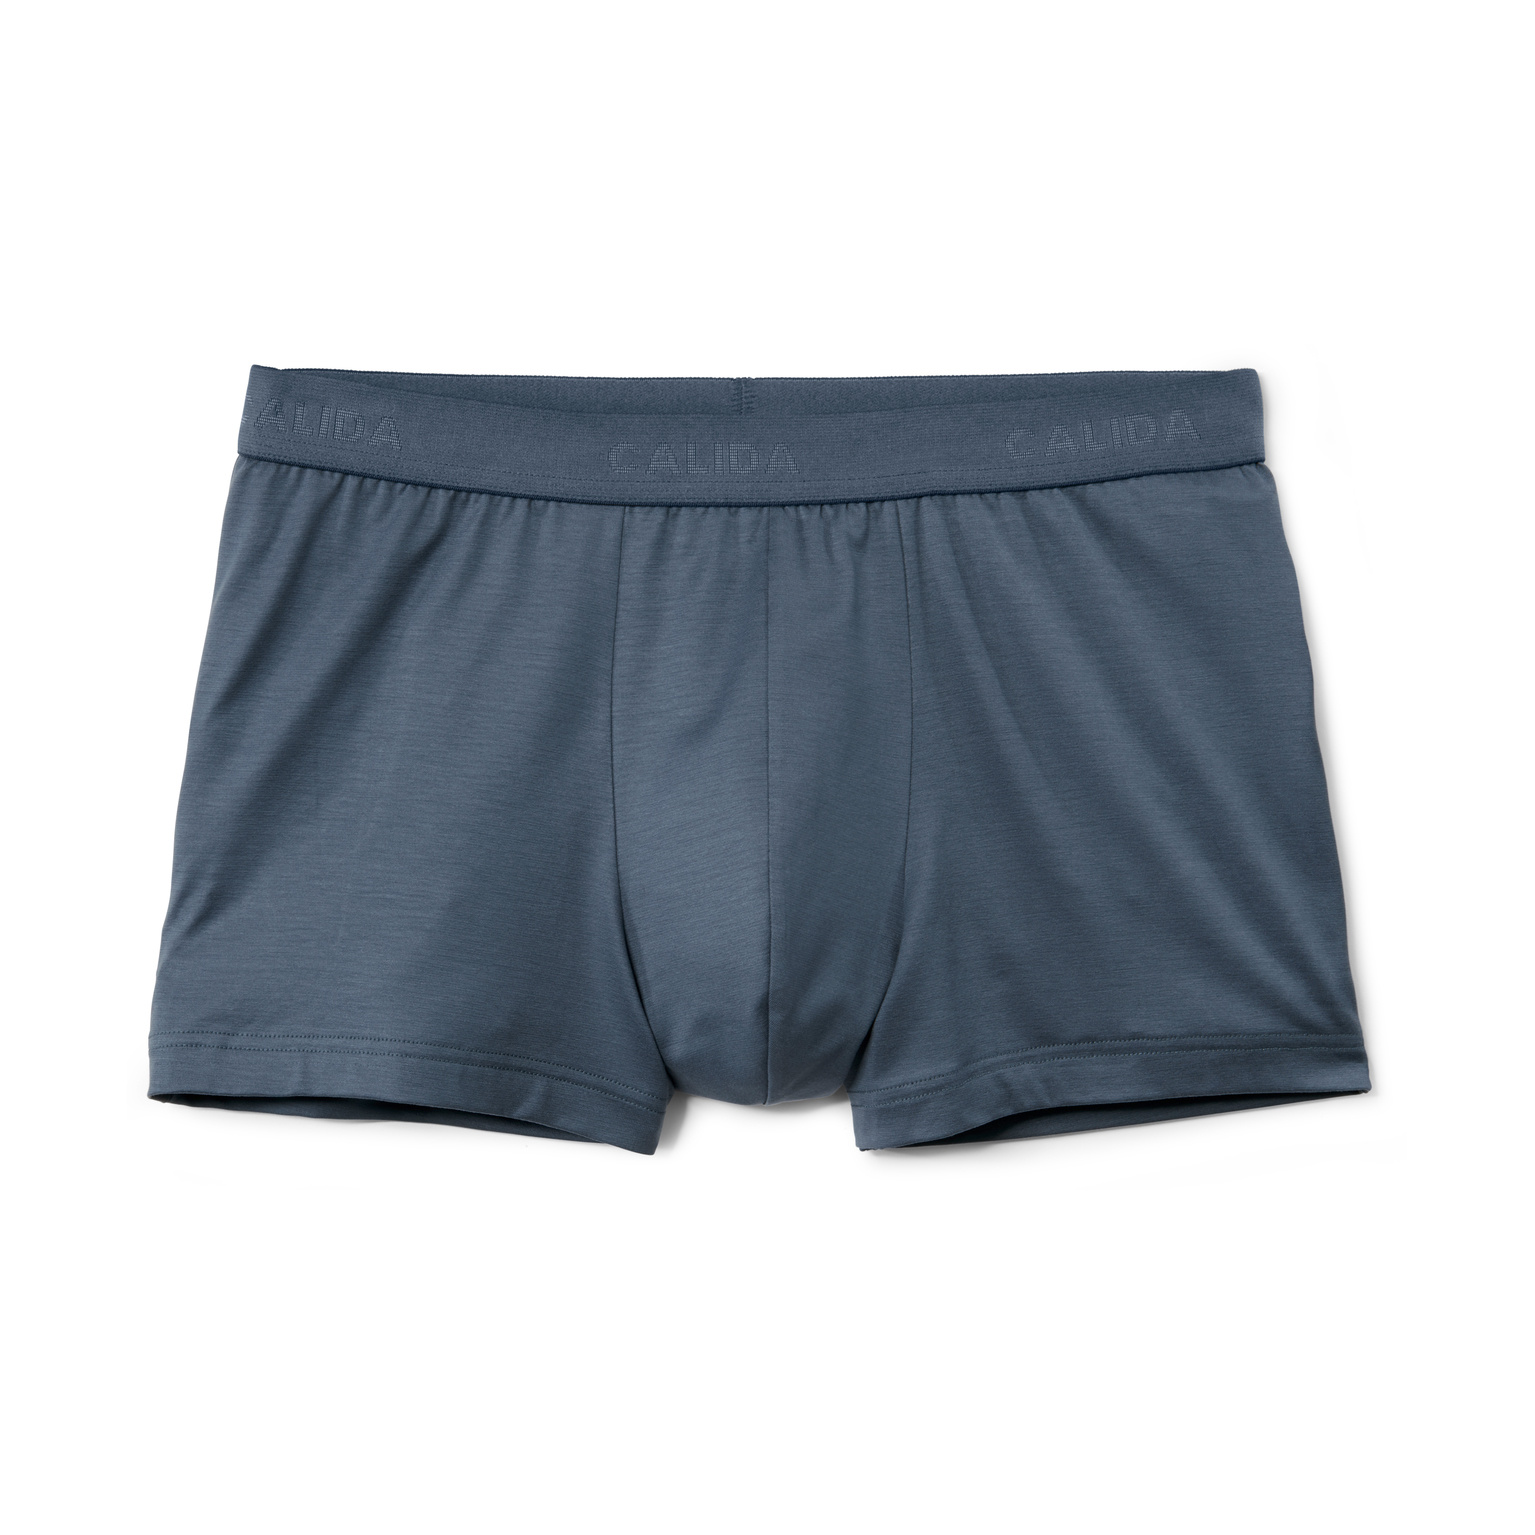 Calida Boxershort 100% compostable